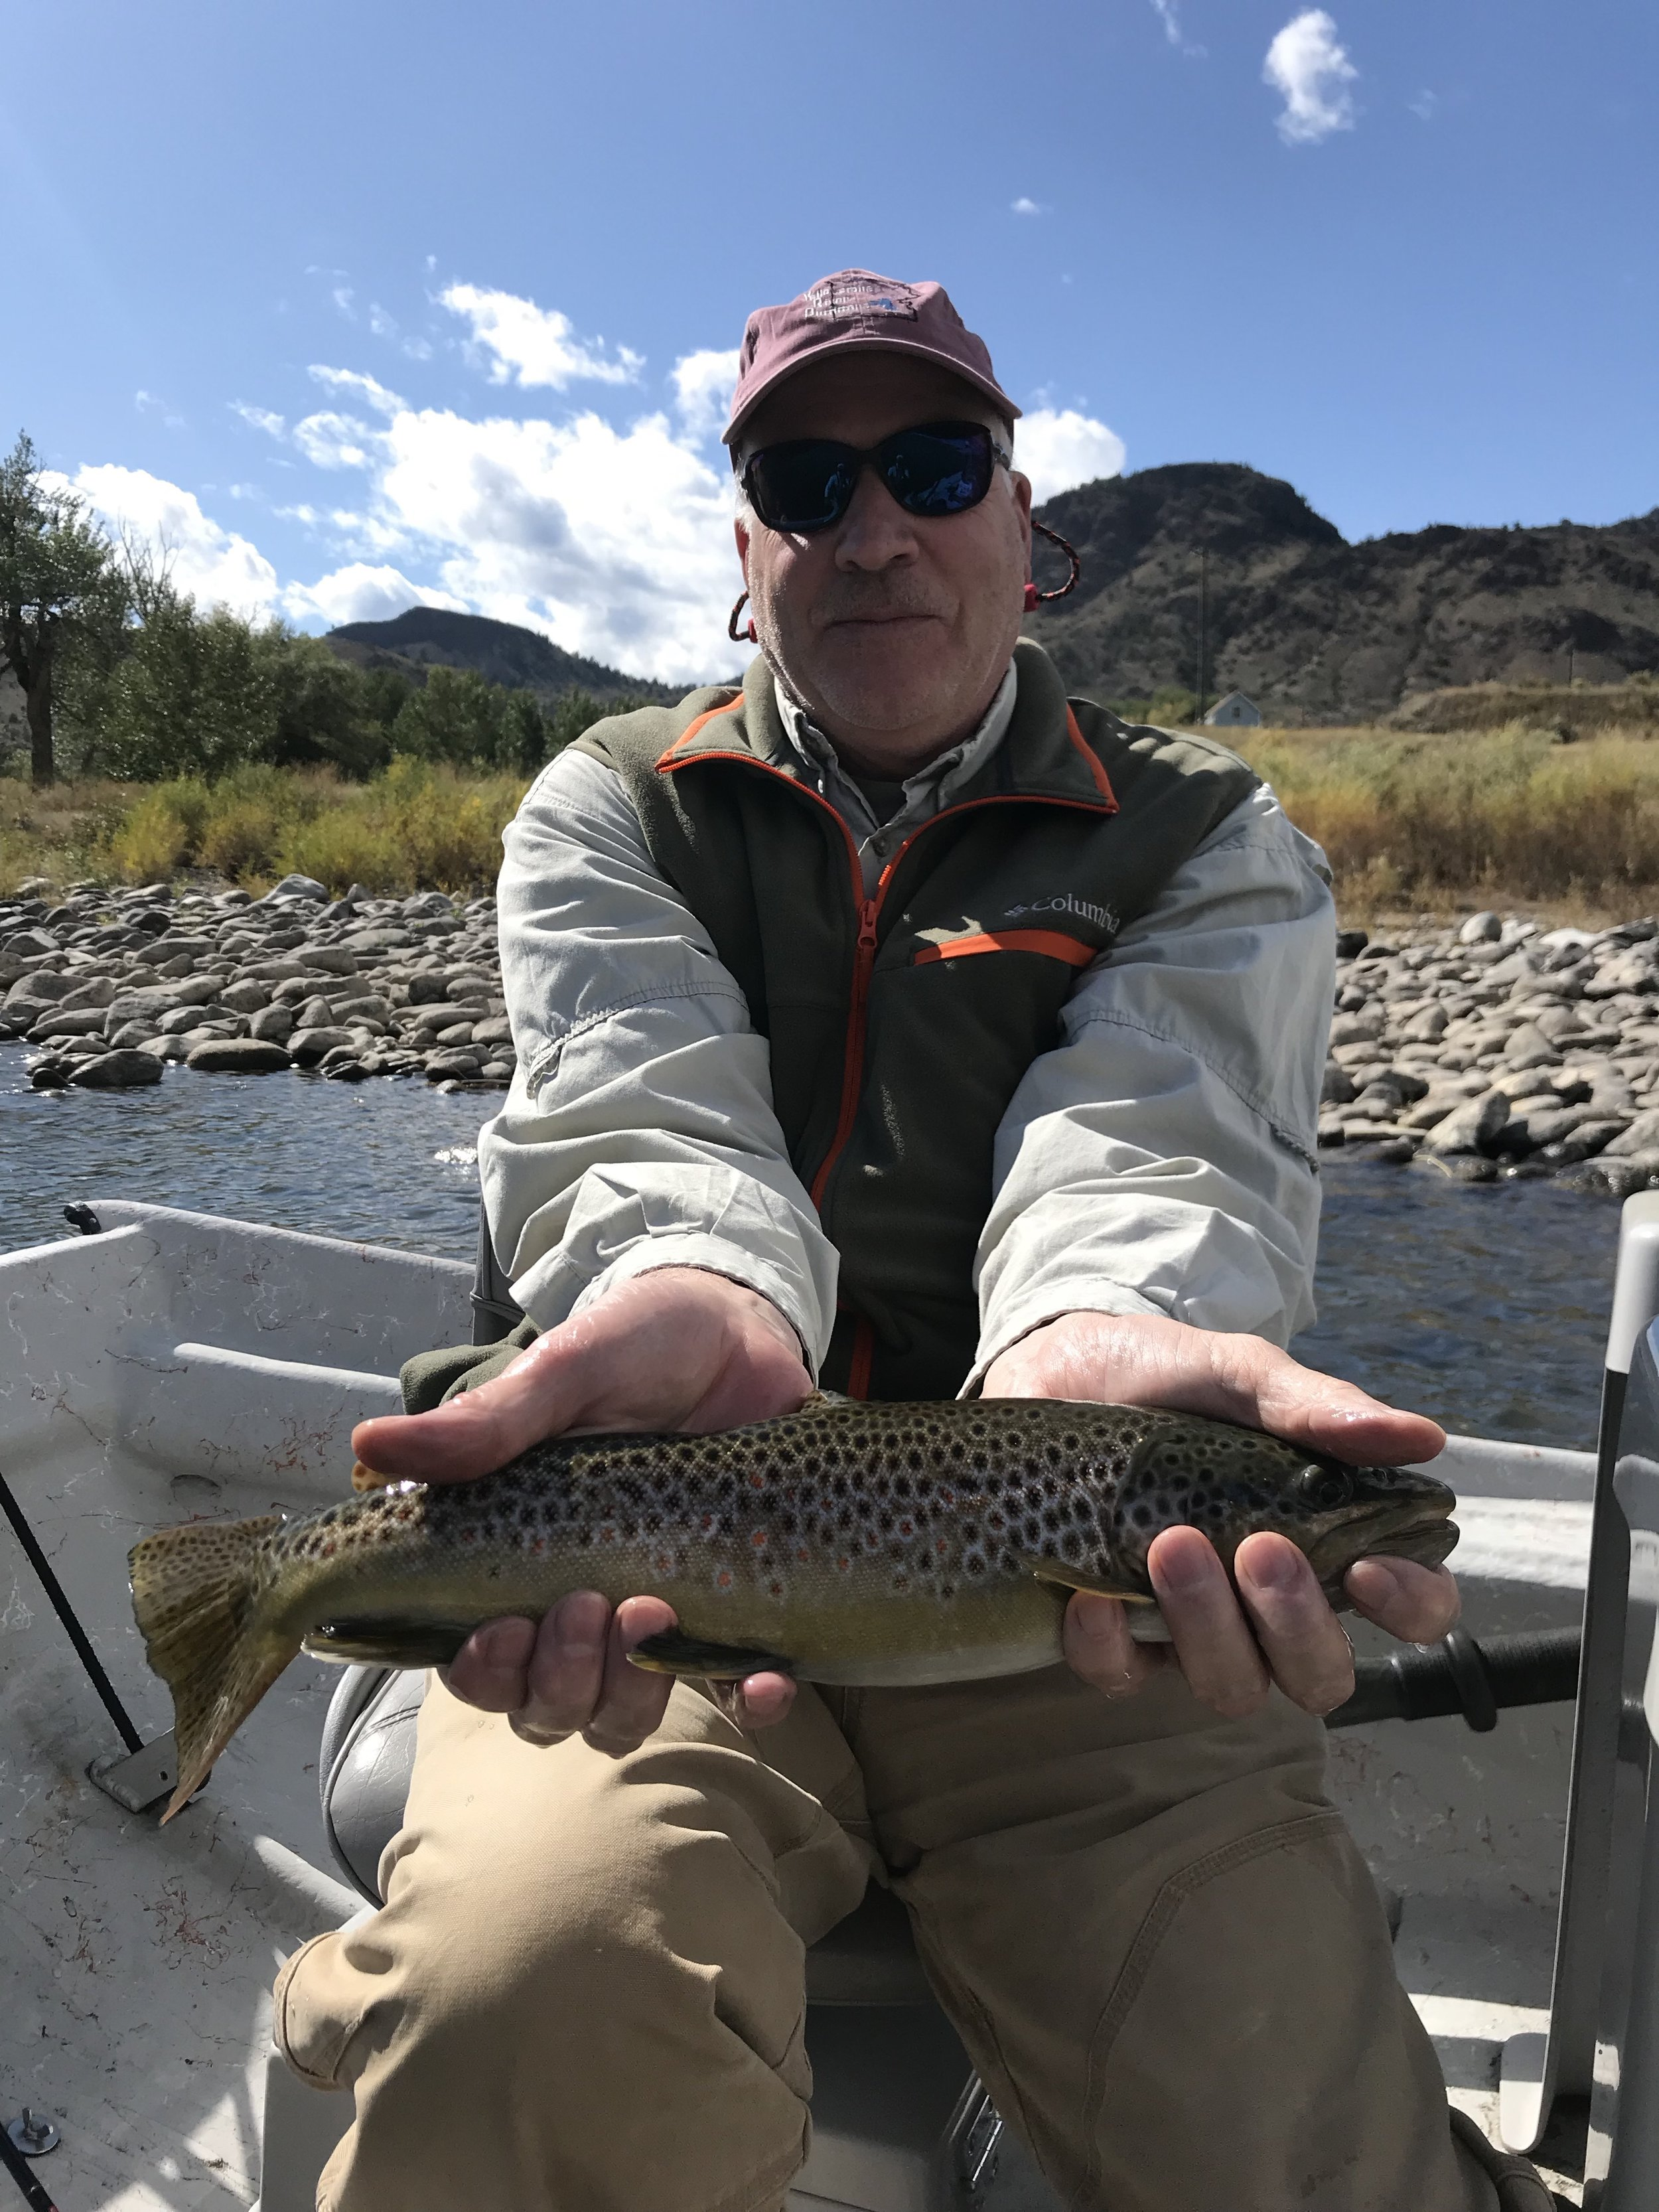 Dave with a nice Yellowstone River Brown Trout